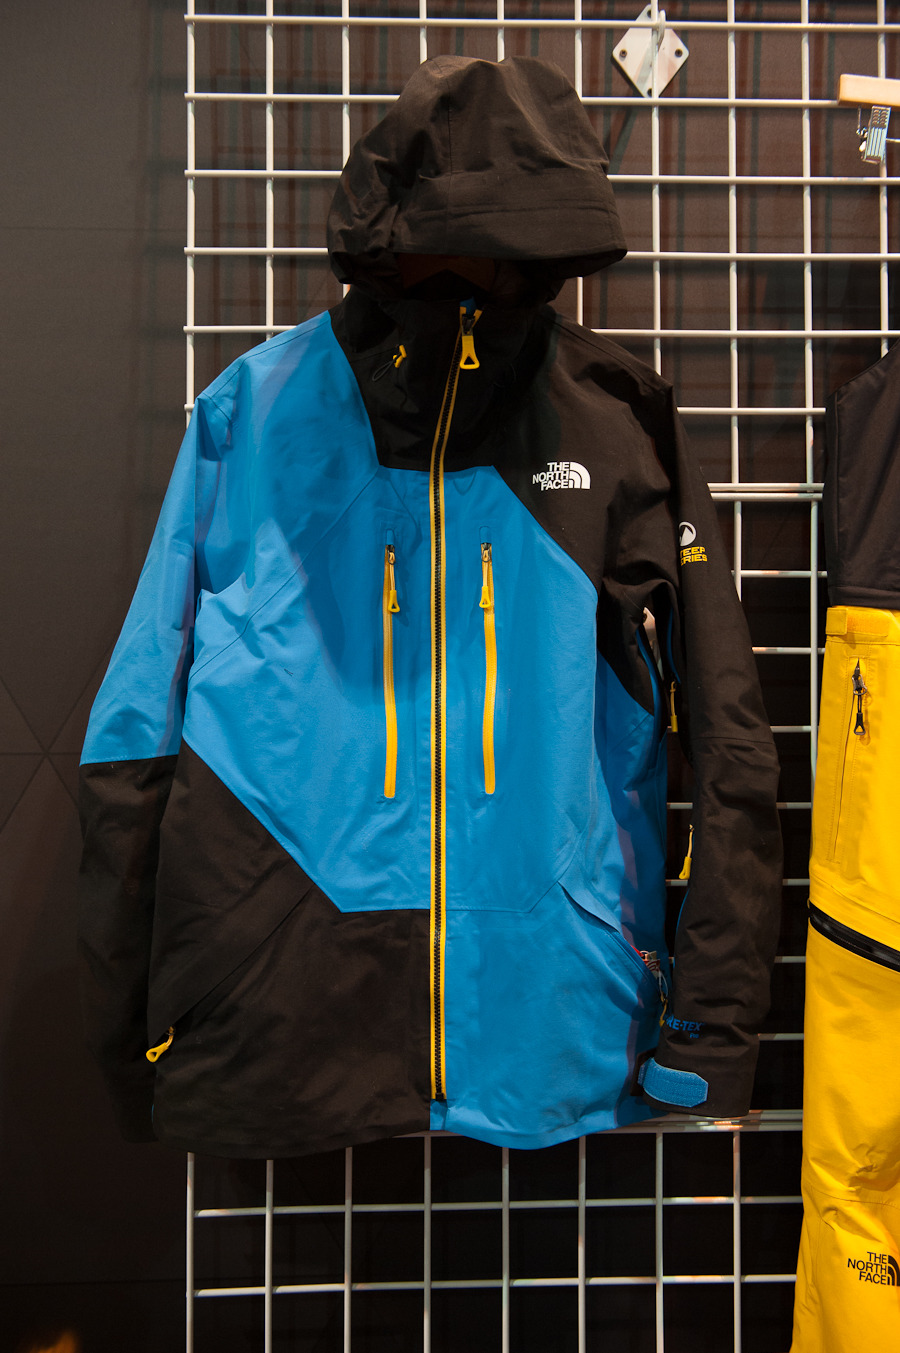 The pro athlete inspired Steep Series from The North Face features the Free Thinker jacket. It has GORE-TEX® 3 layer pro, and an internal fleece-lined cell phone pocket.  - © Ashleigh Miller Photography